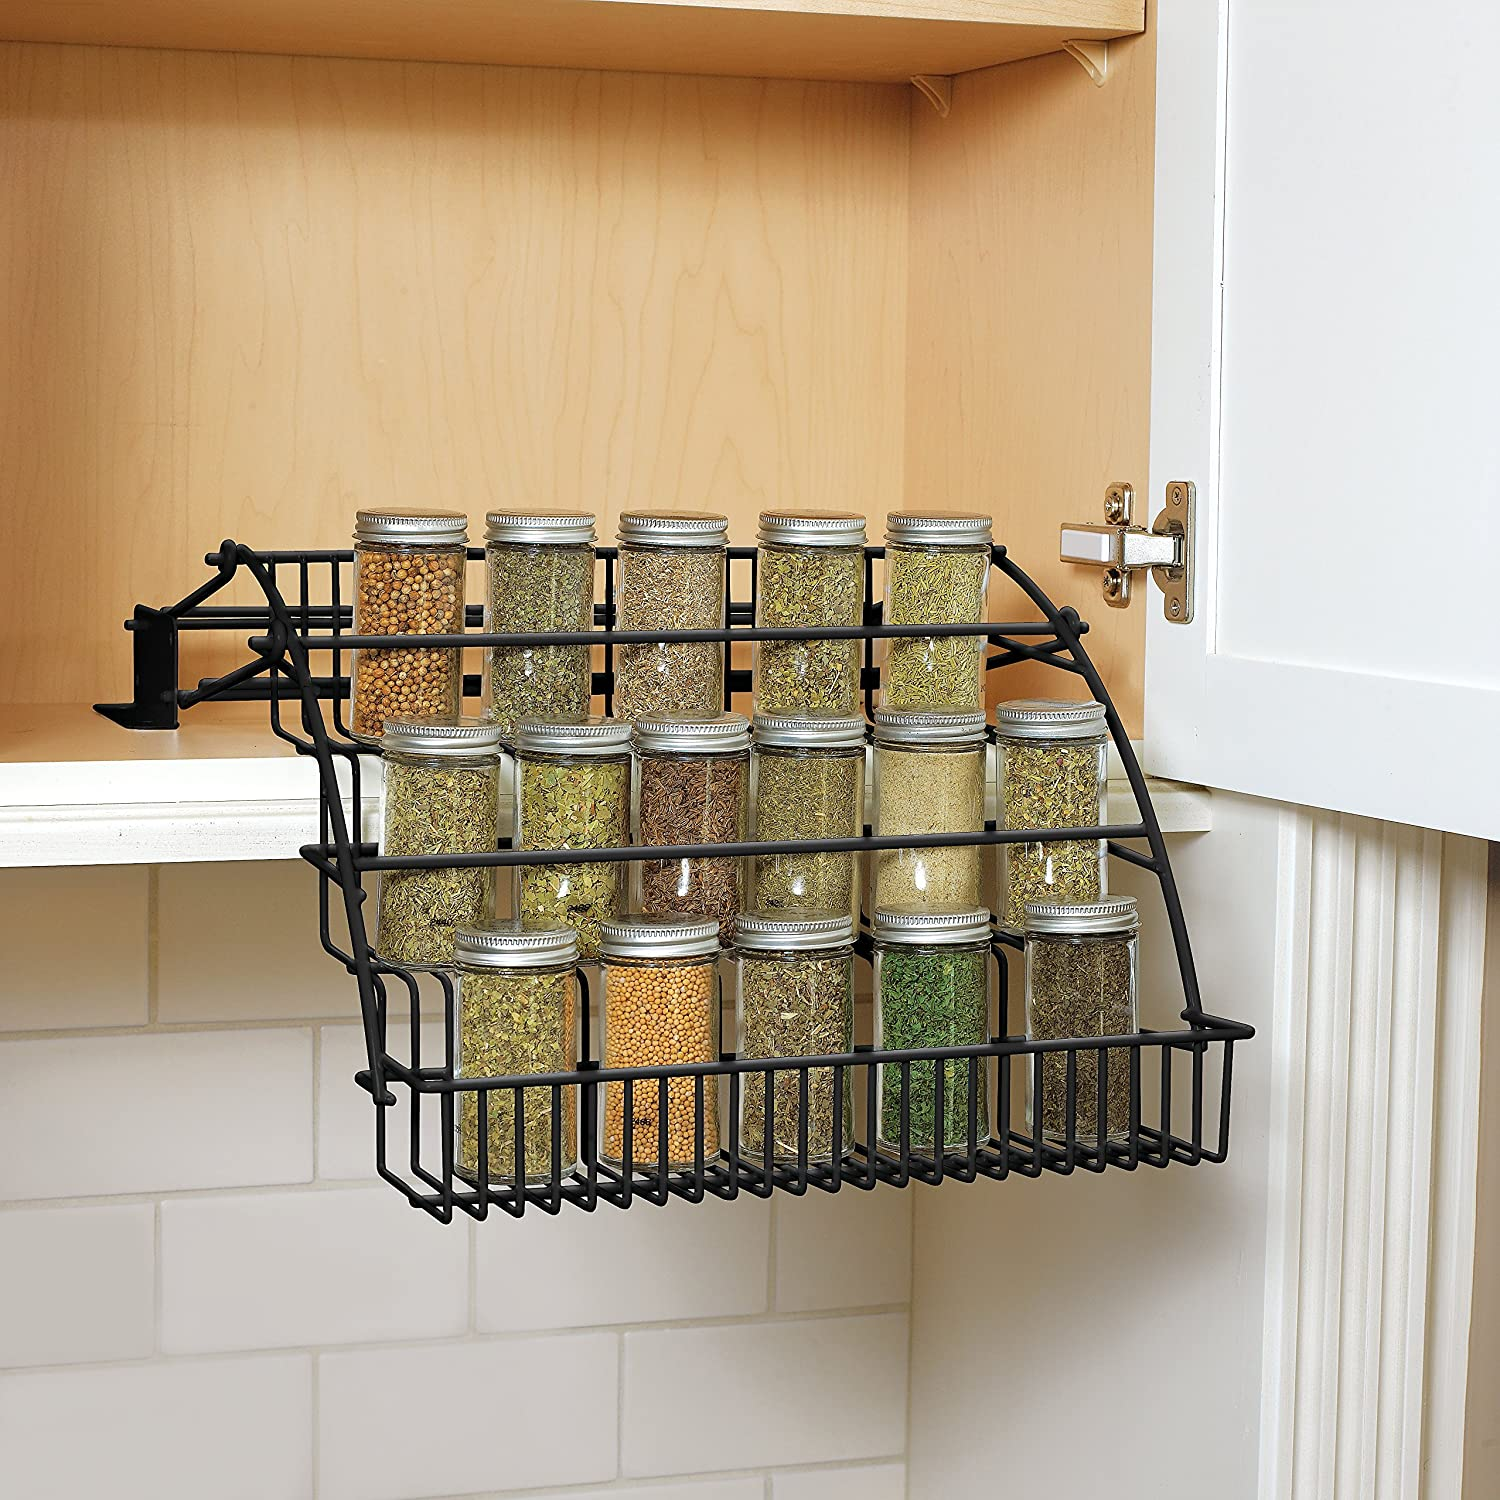 new for cabinet kitchen cabinets com and mnl spice rack capacity unique drawers dp amazon vertical racks mounted dc